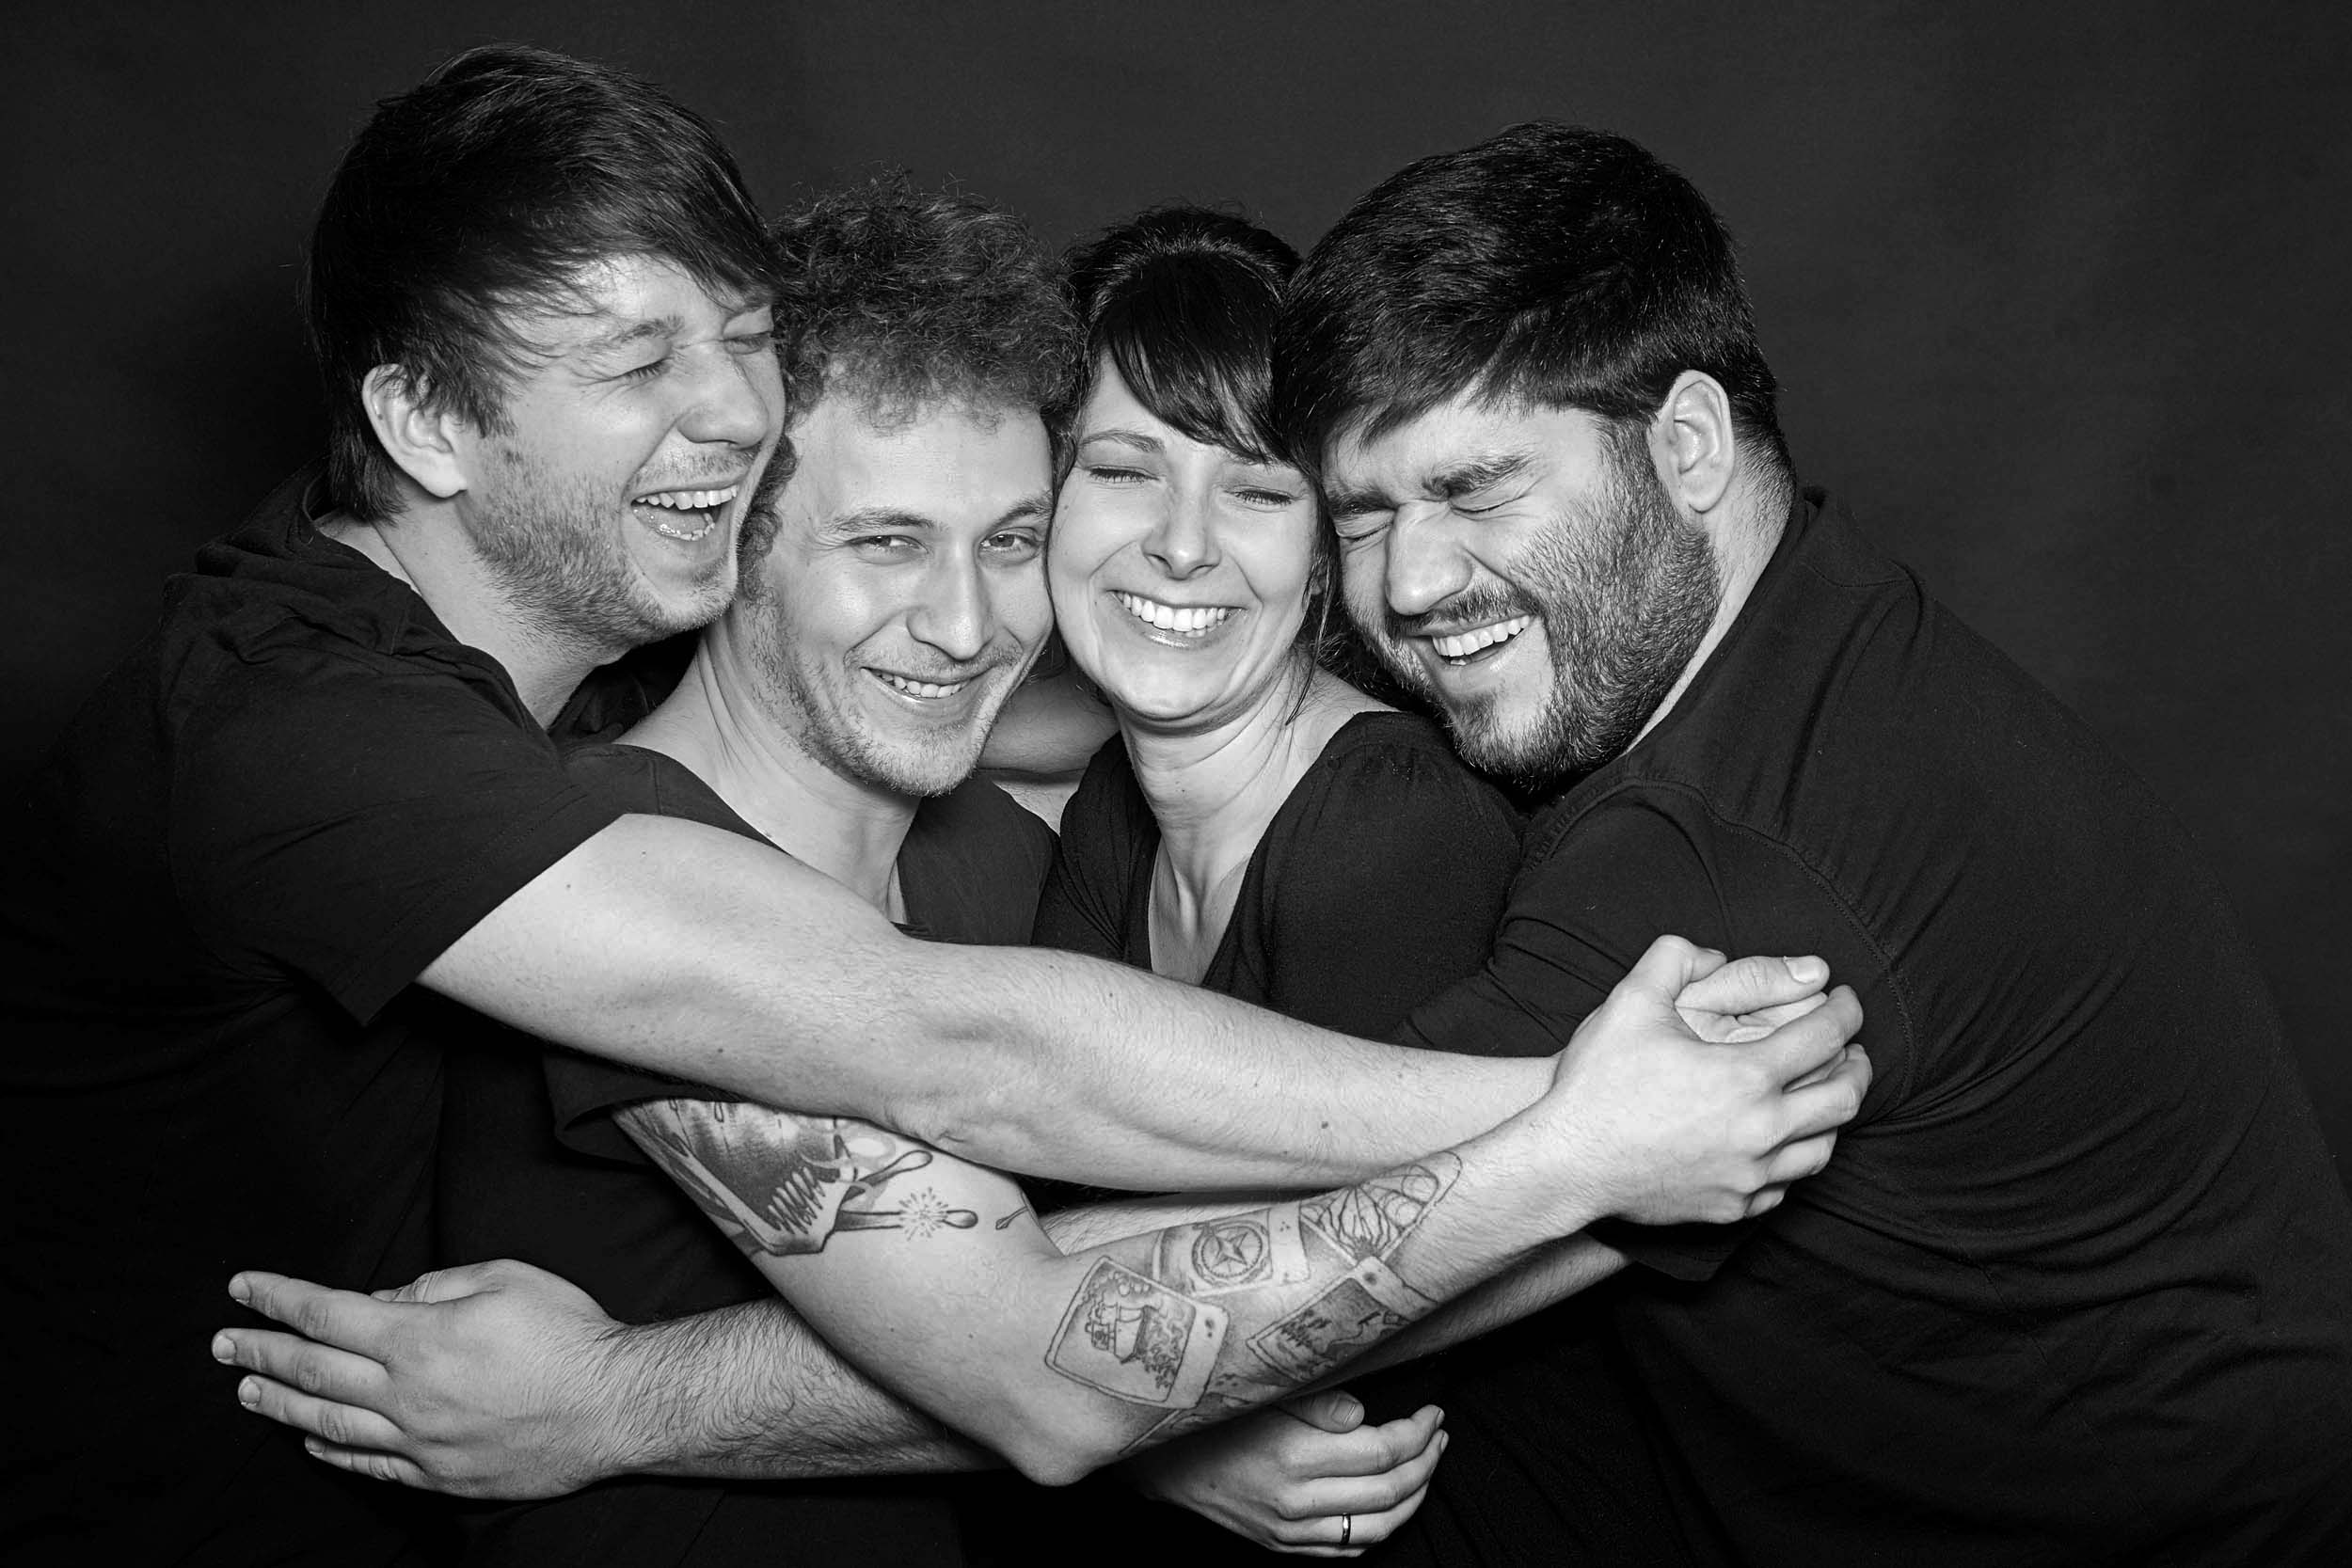 Bandportrait Fotostudio Maintal